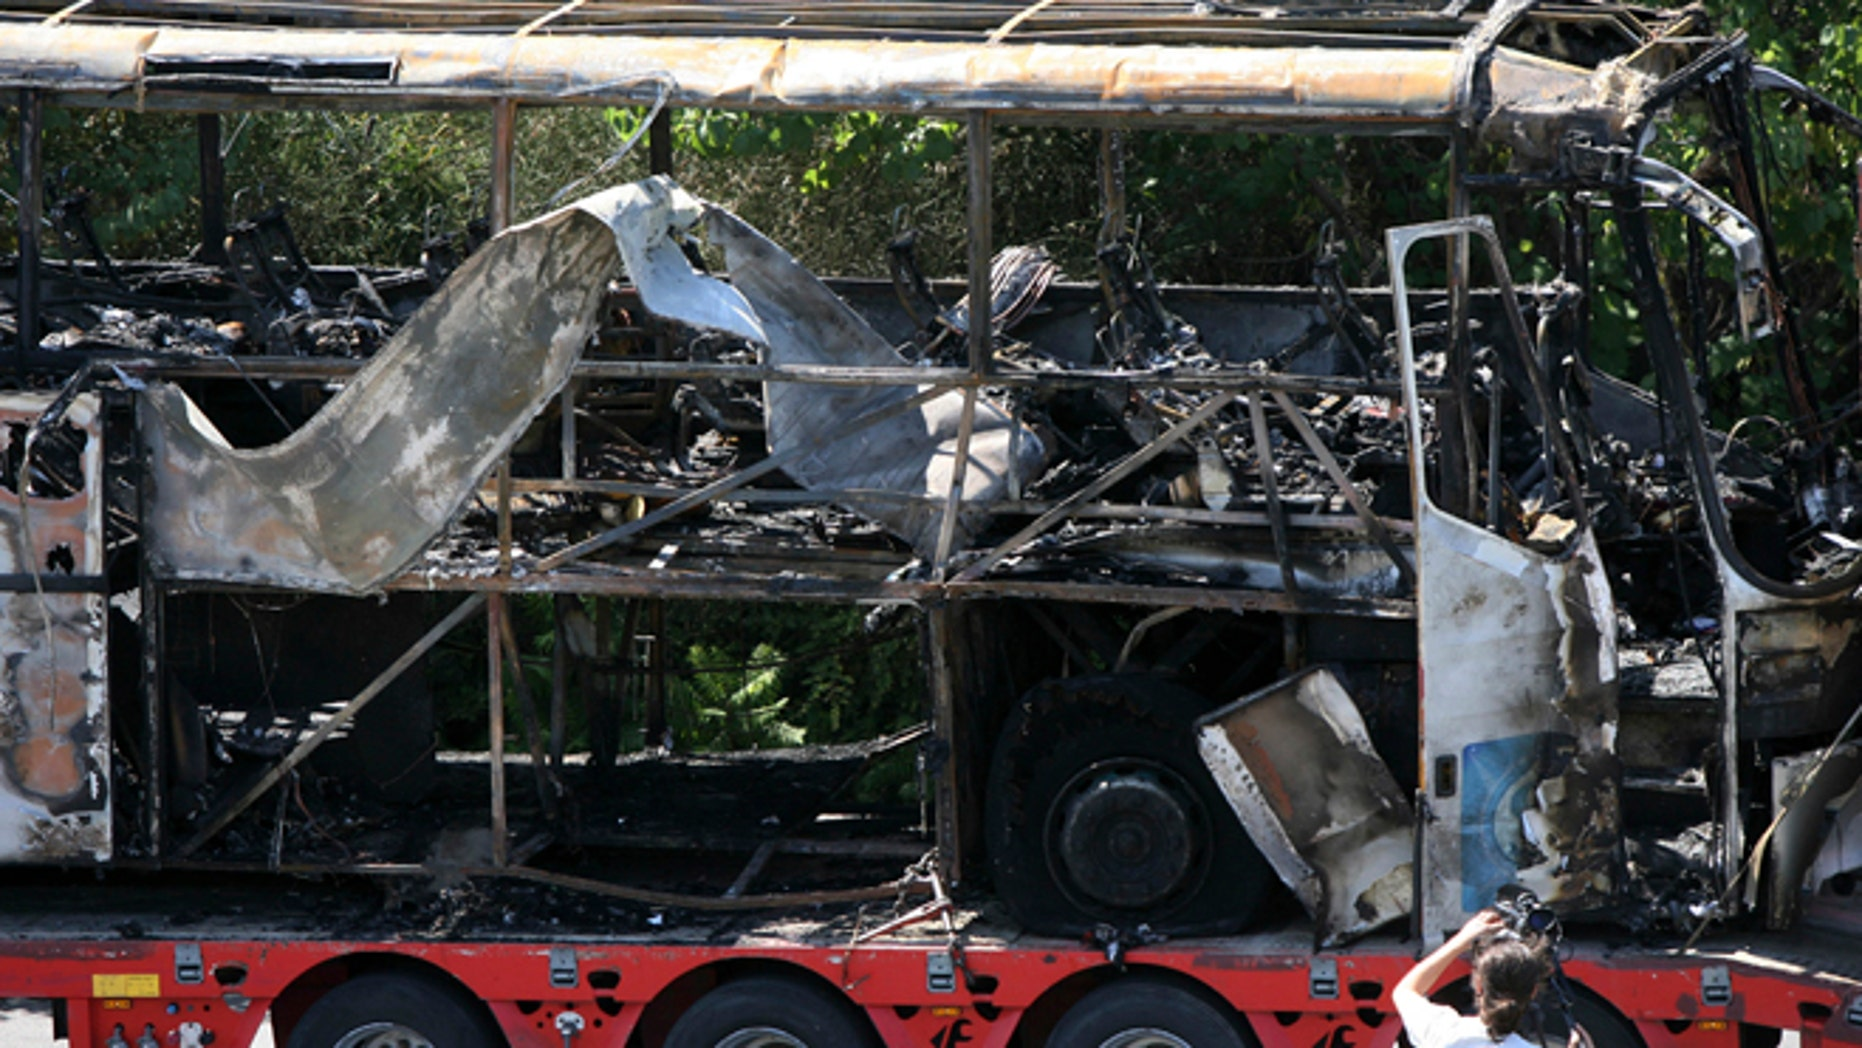 July 19, 2012: In this file photo, a damaged bus is transported out of Burgas airport, Bulgaria, a day after a deadly suicide attack on a bus full of Israeli vacationers.